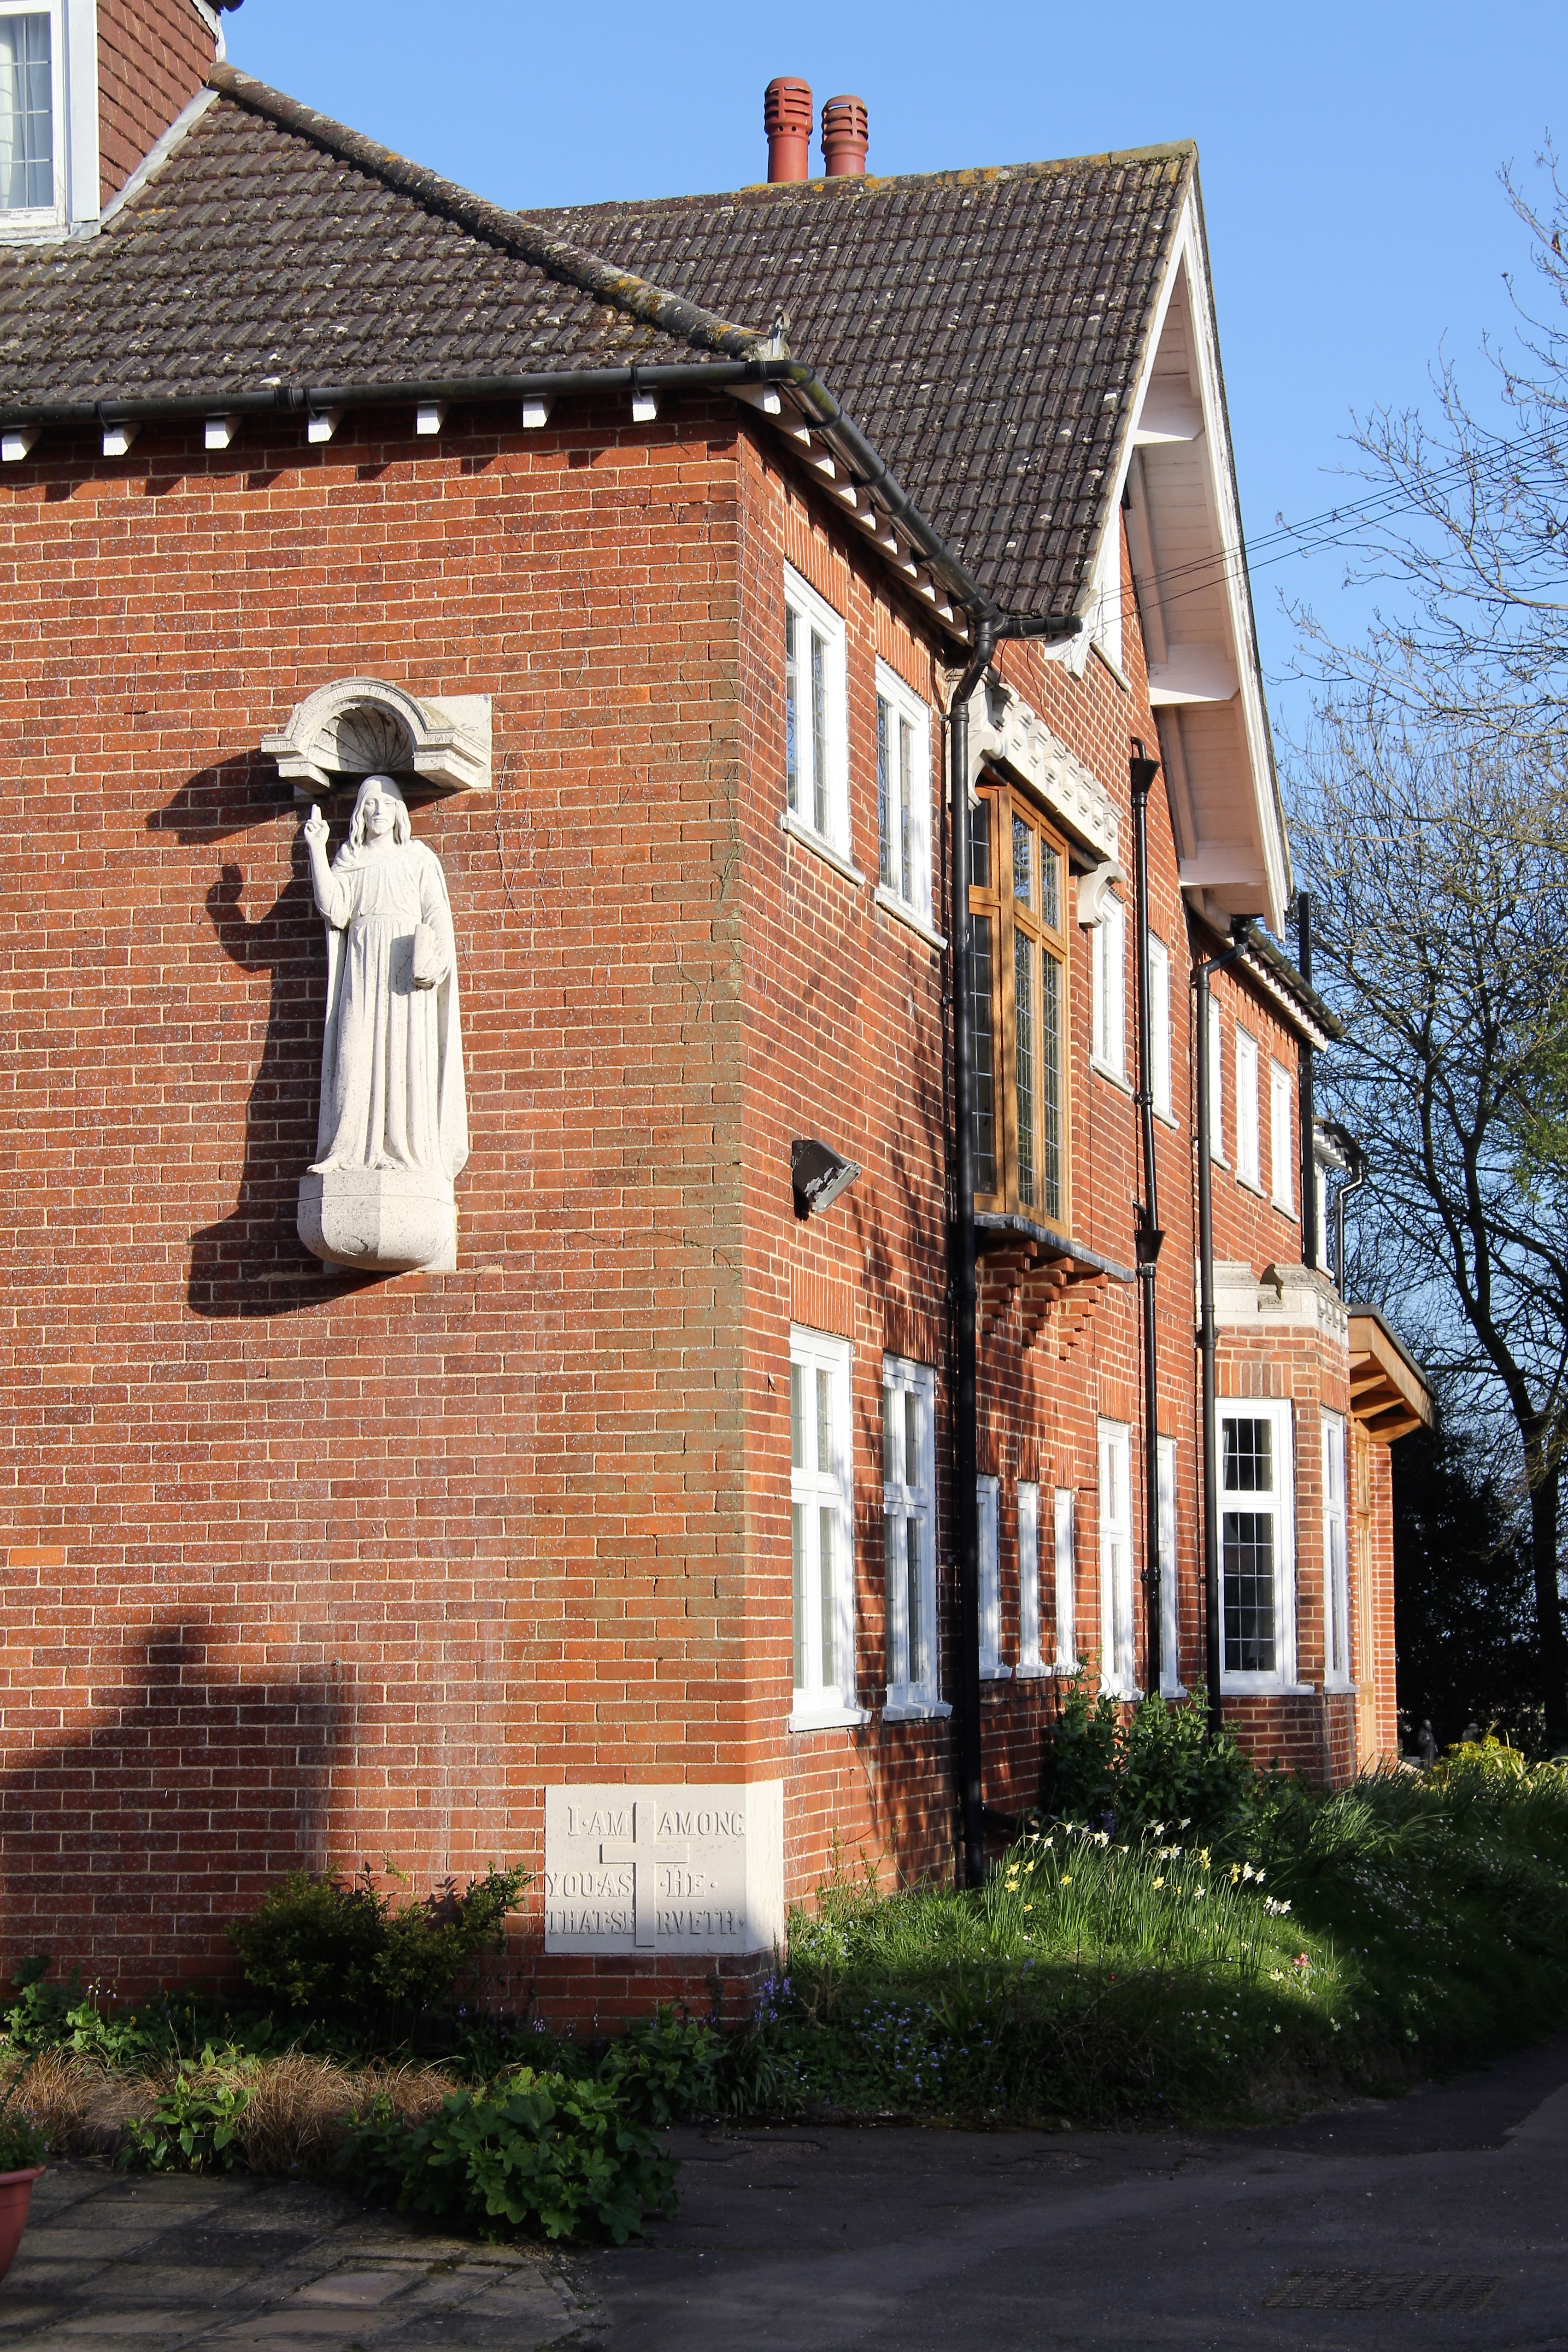 'Praying with Evelyn Underhill' at Retreat House Pleshey